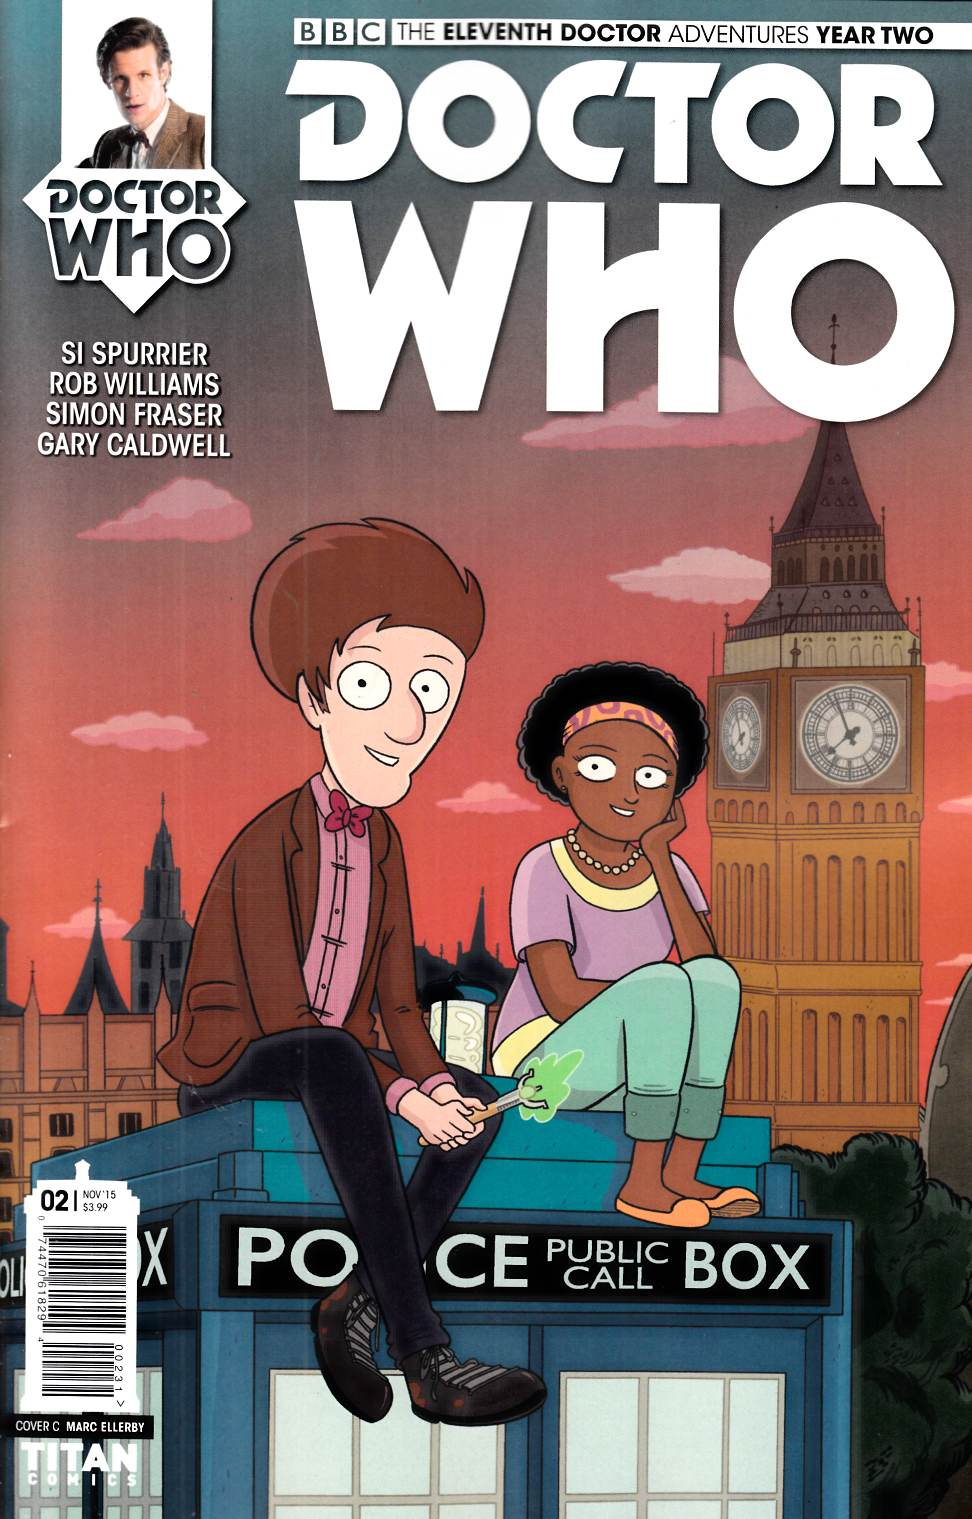 Doctor Who 11th Doctor Year 2 #2 Ellerby Varaint [Titan Comic]